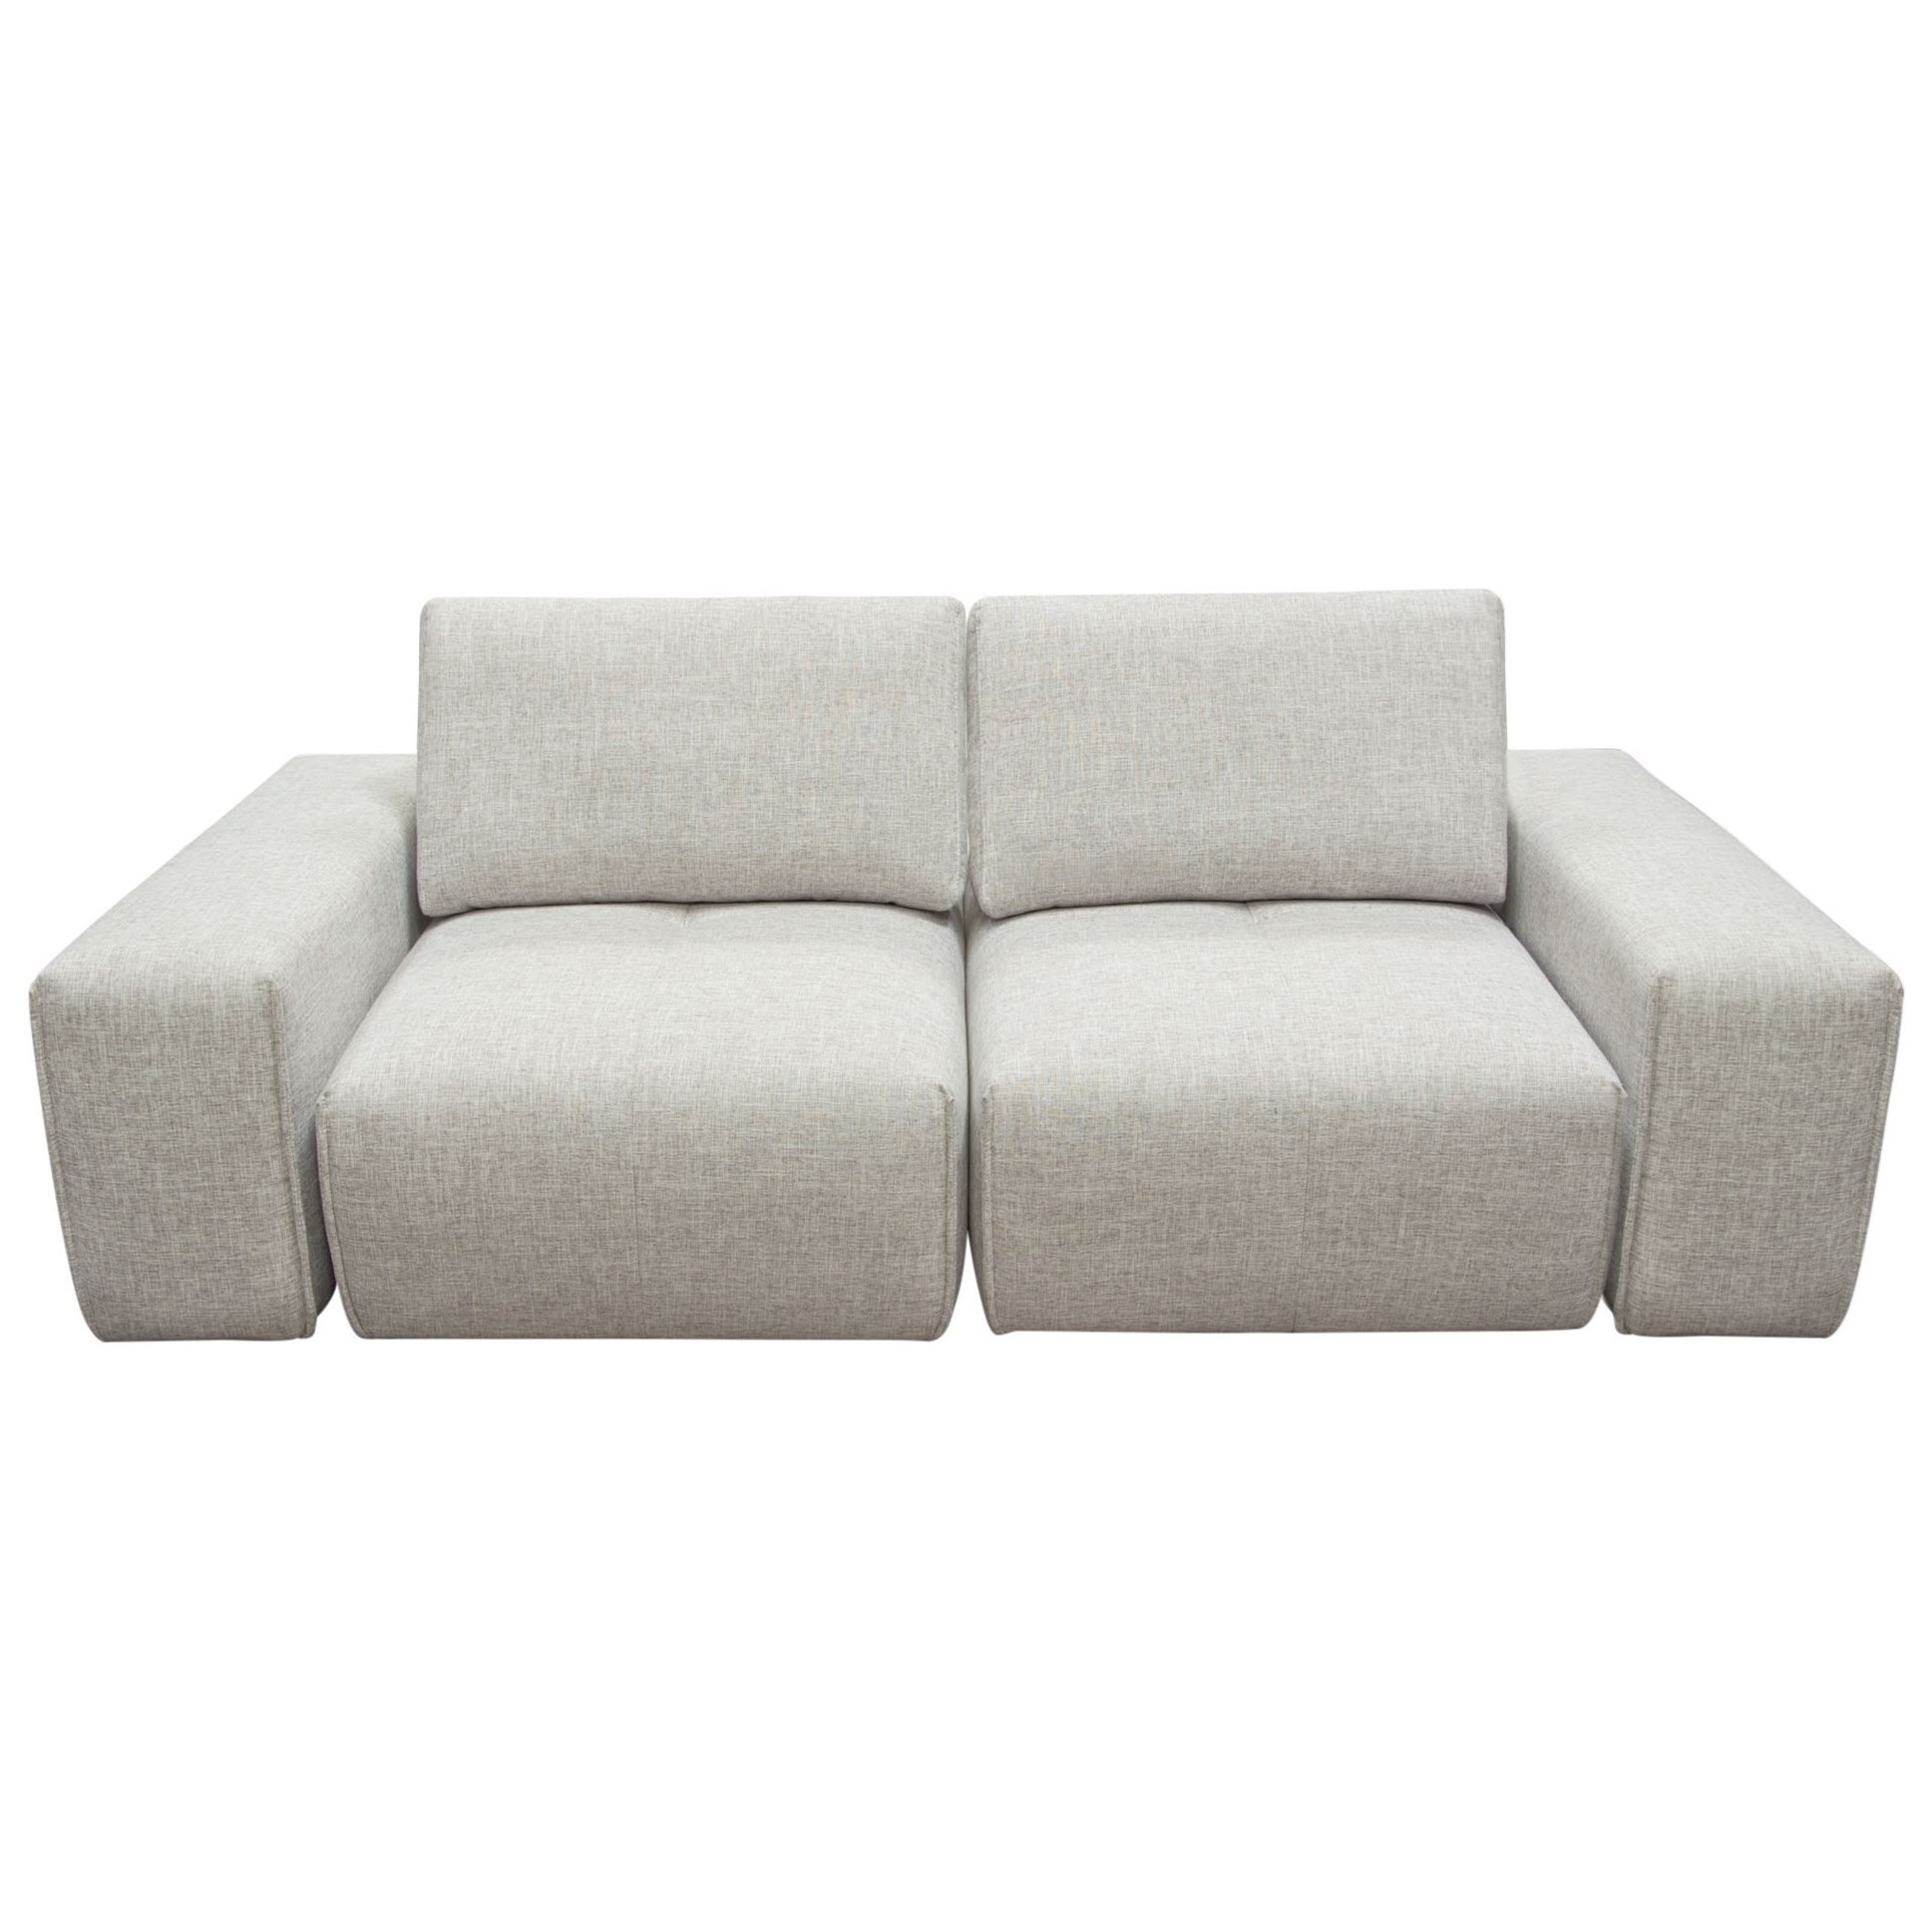 Jazz Loveseat by Diamond Sofa at Red Knot